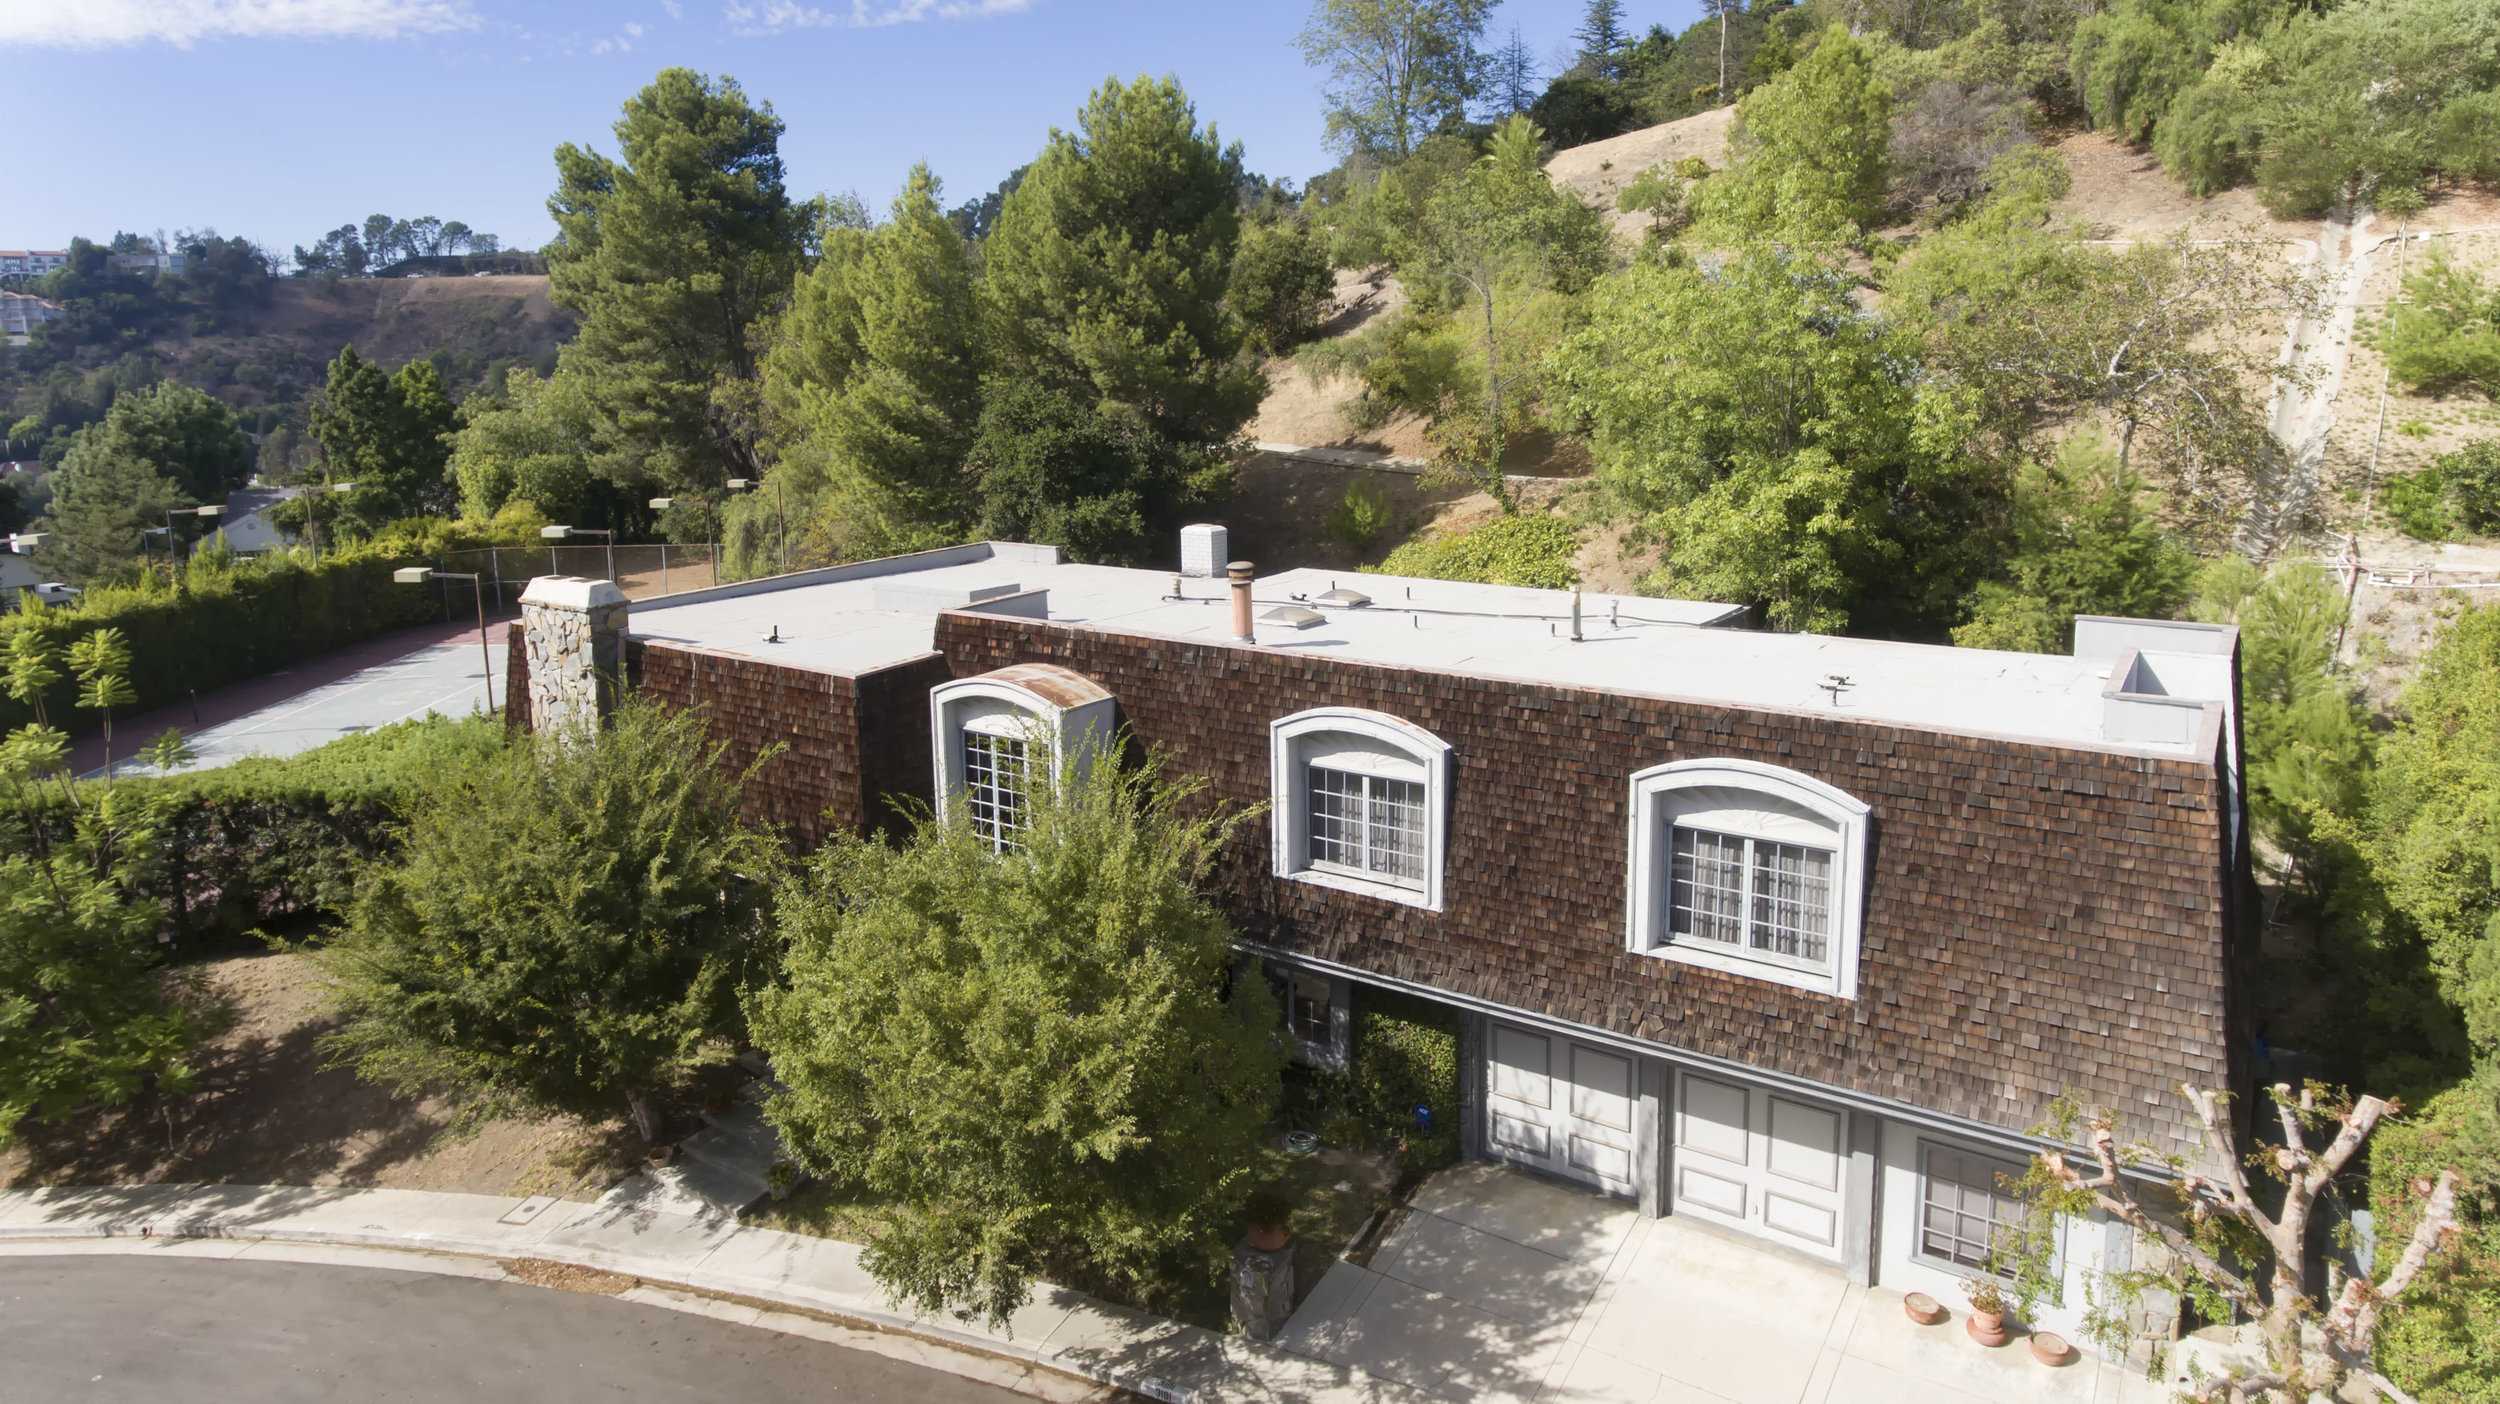 016 Aerial 3191 Toppington Drive Beverly Hills For Sale Lease The Malibu Life Team Luxury Real Estate.jpg